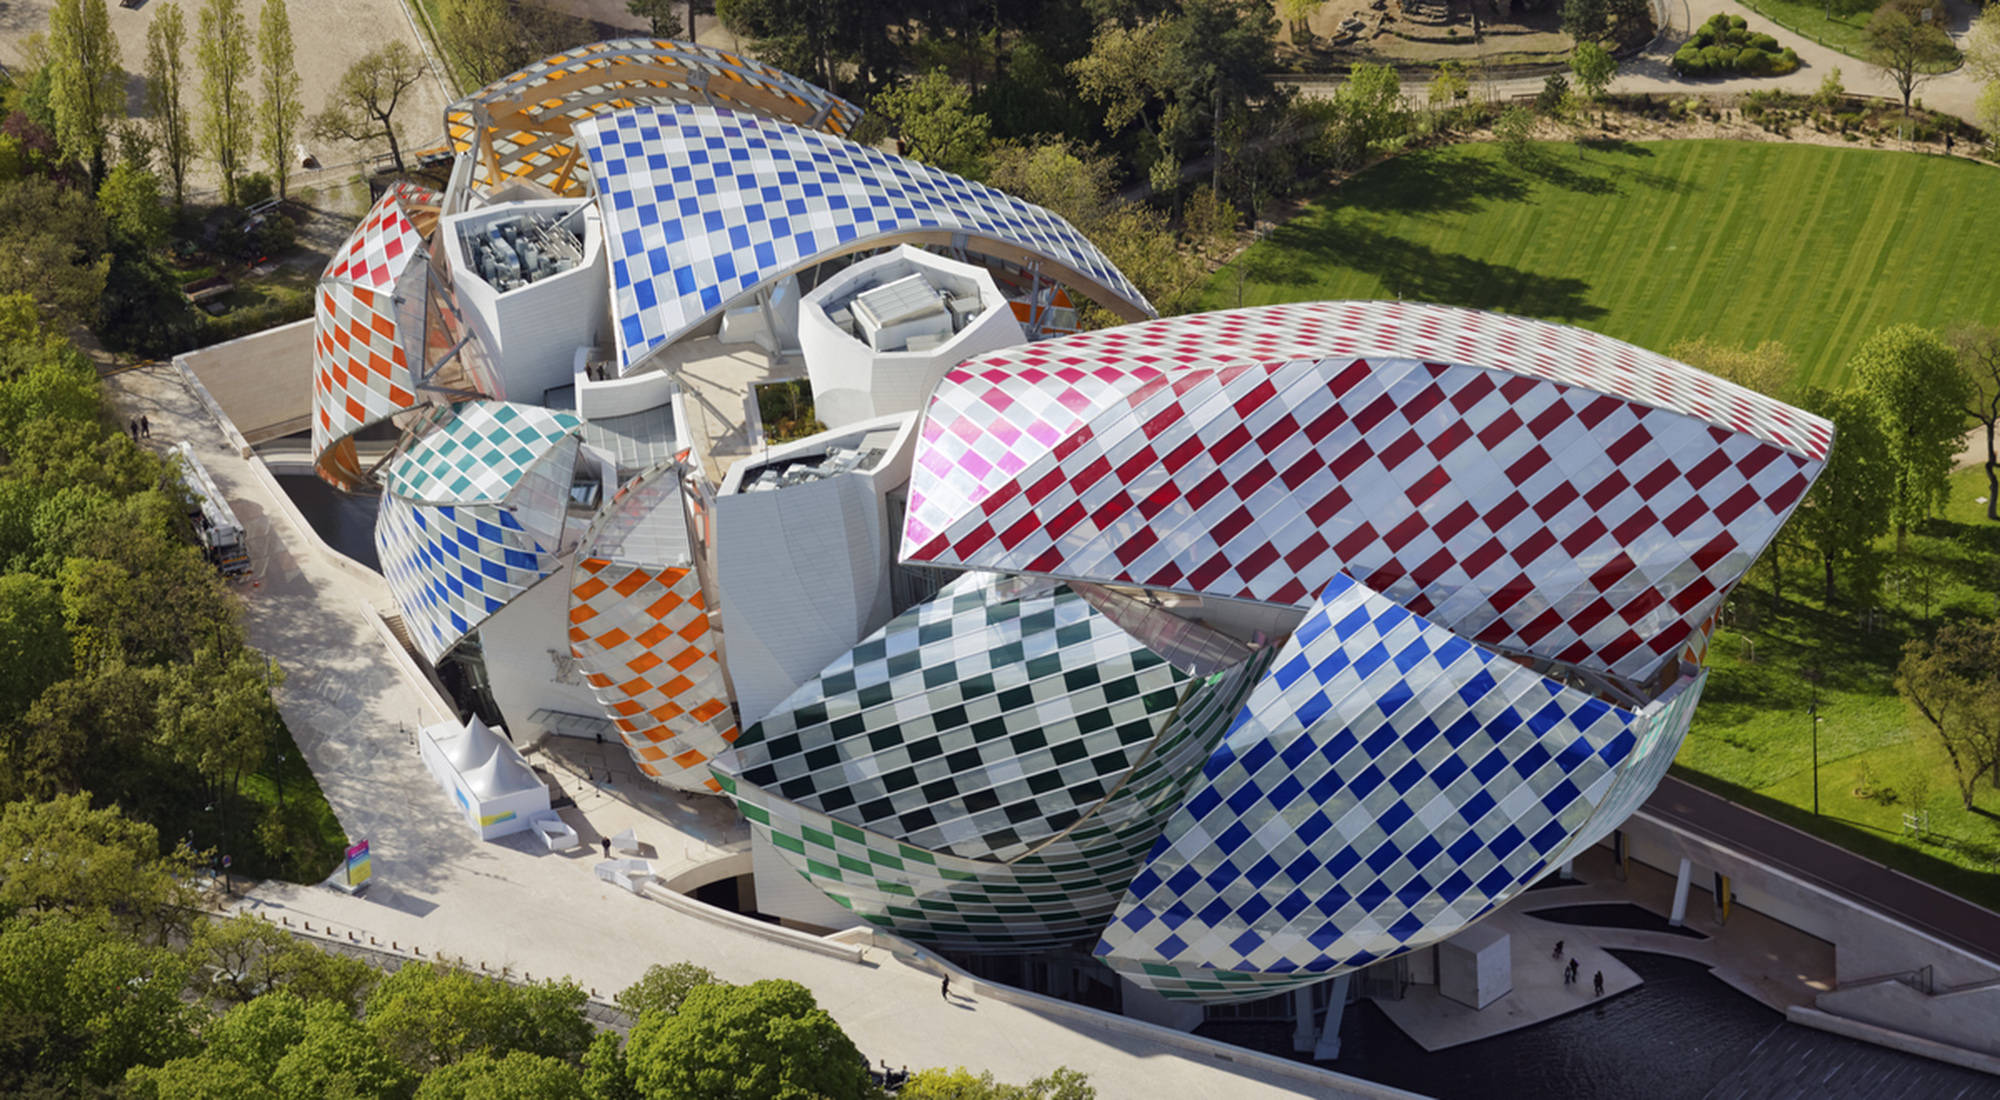 Fondation Louis Vuitton, opened in 2014